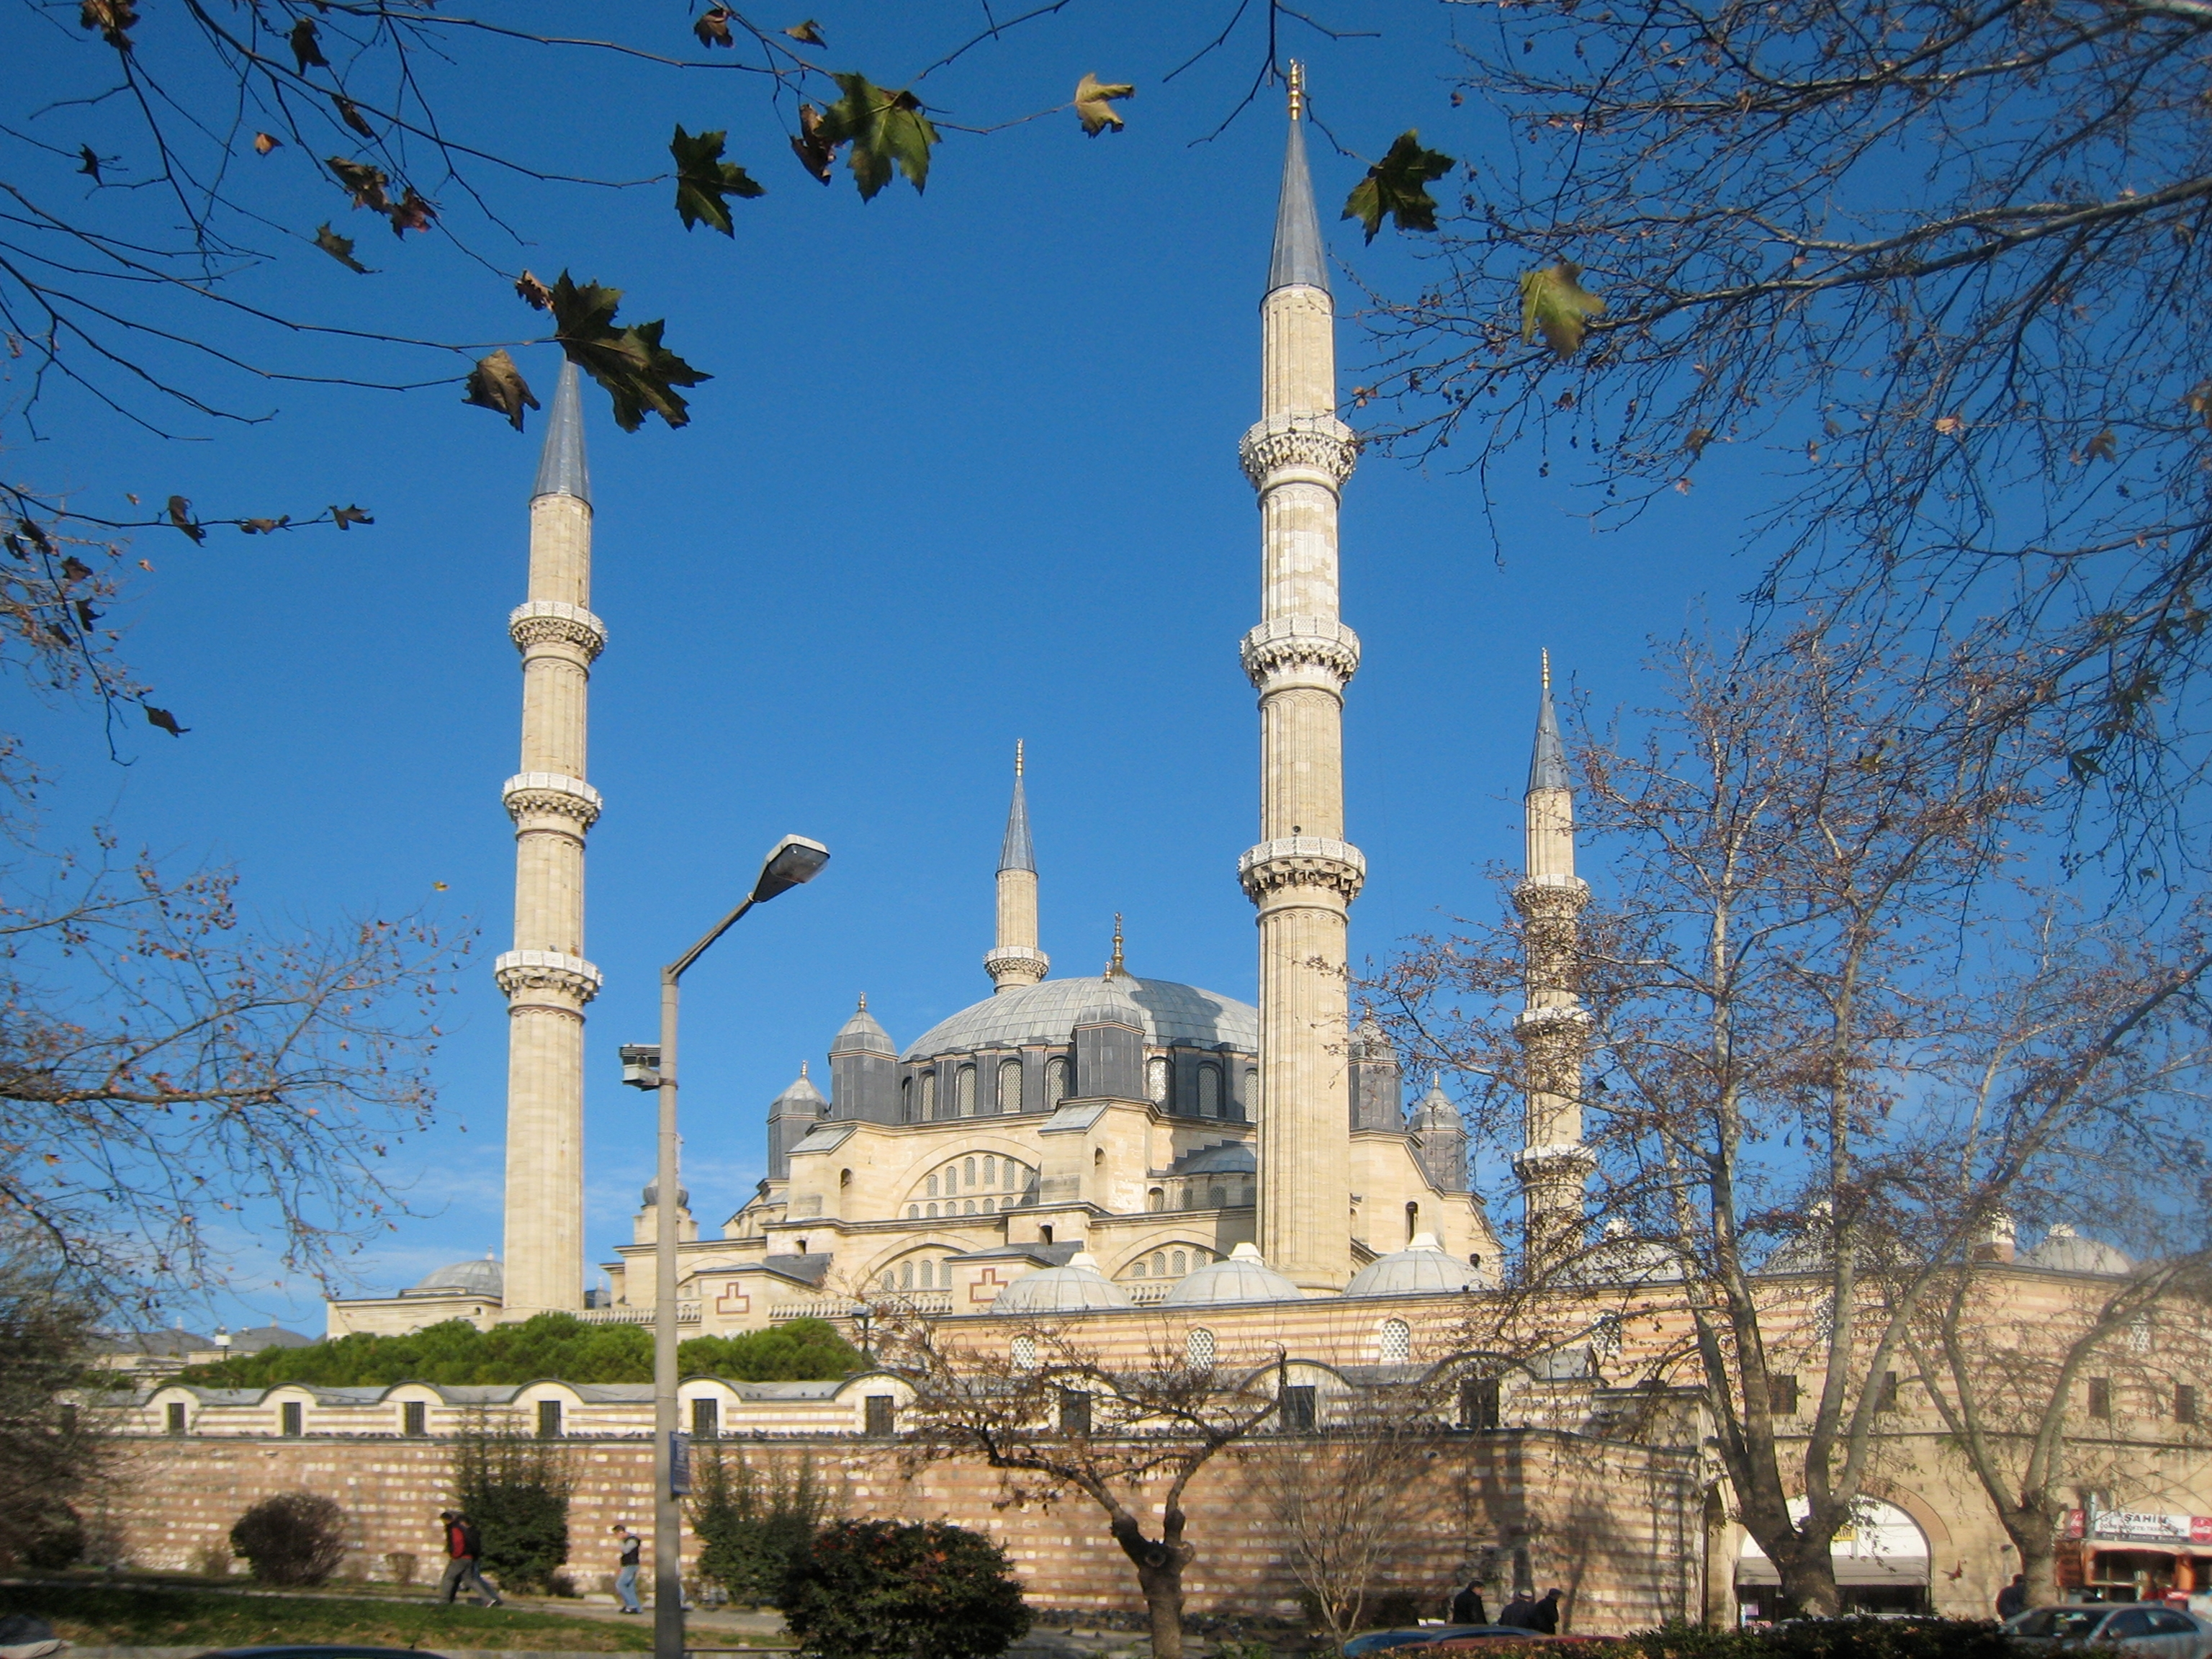 File:Selimiye Mosque 2009.jpg